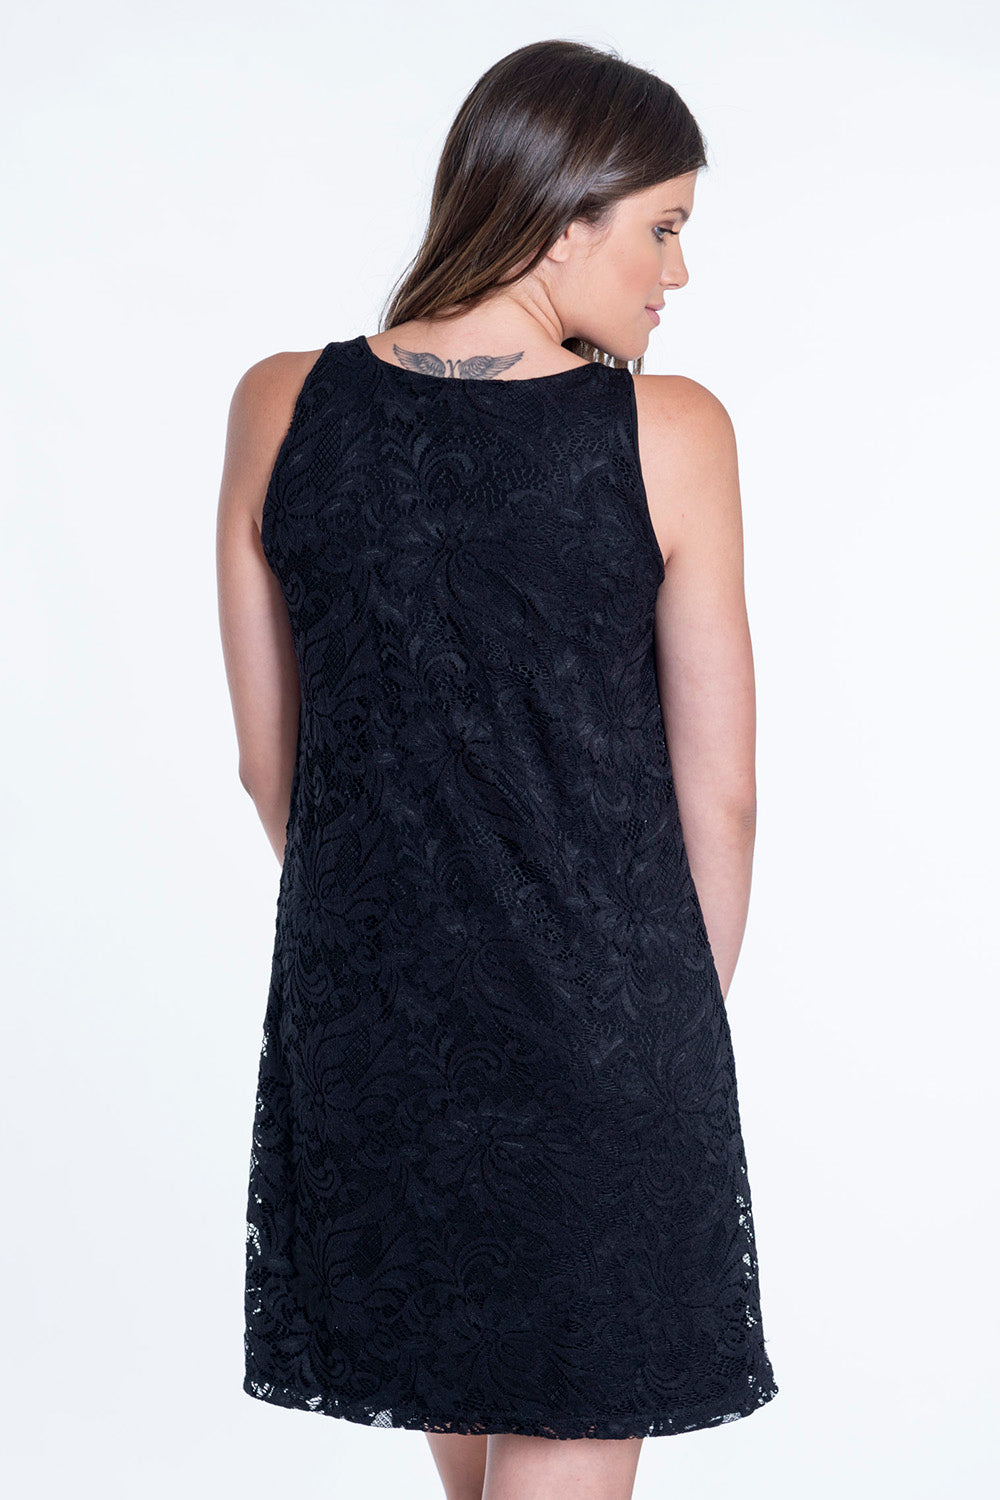 Bojo lace dress in A-line